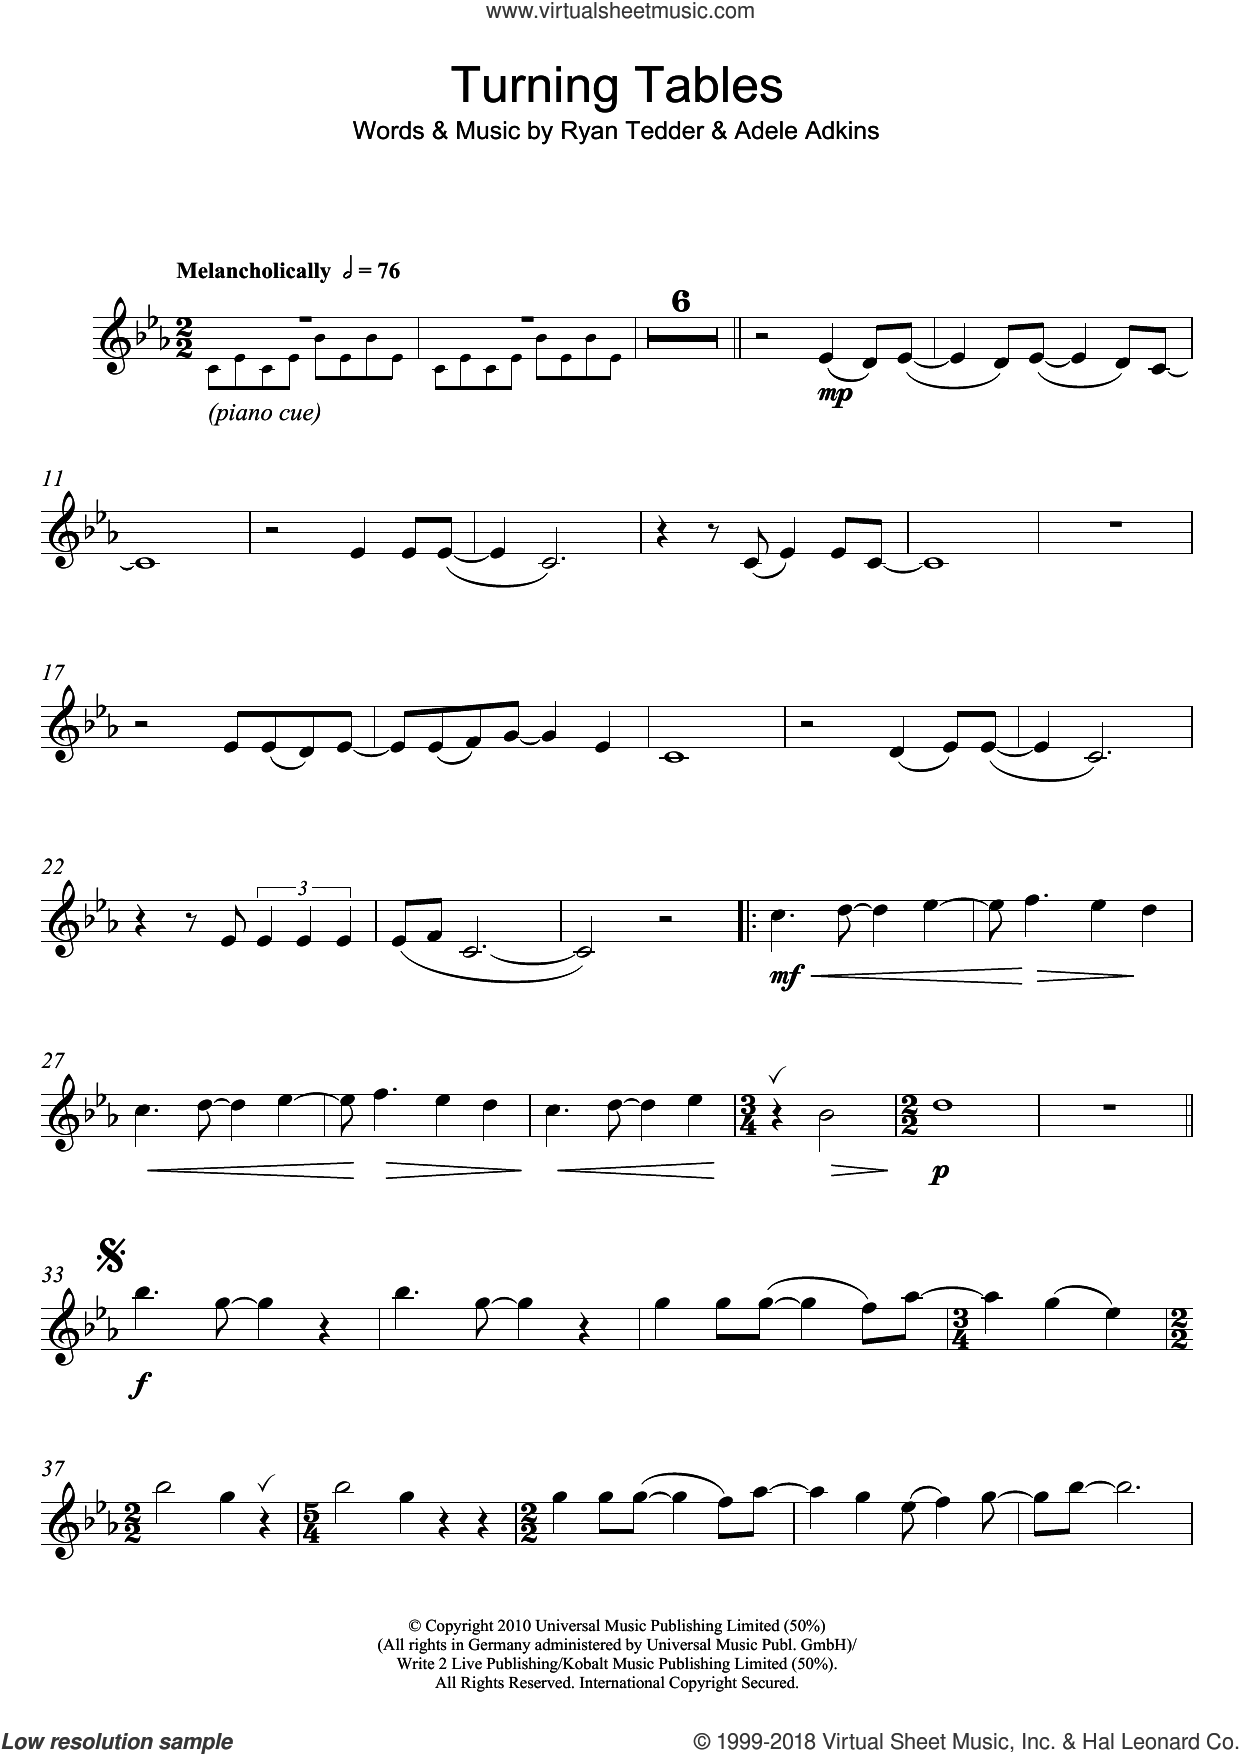 Turning Tables sheet music for flute solo by Adele and Ryan Tedder, intermediate skill level